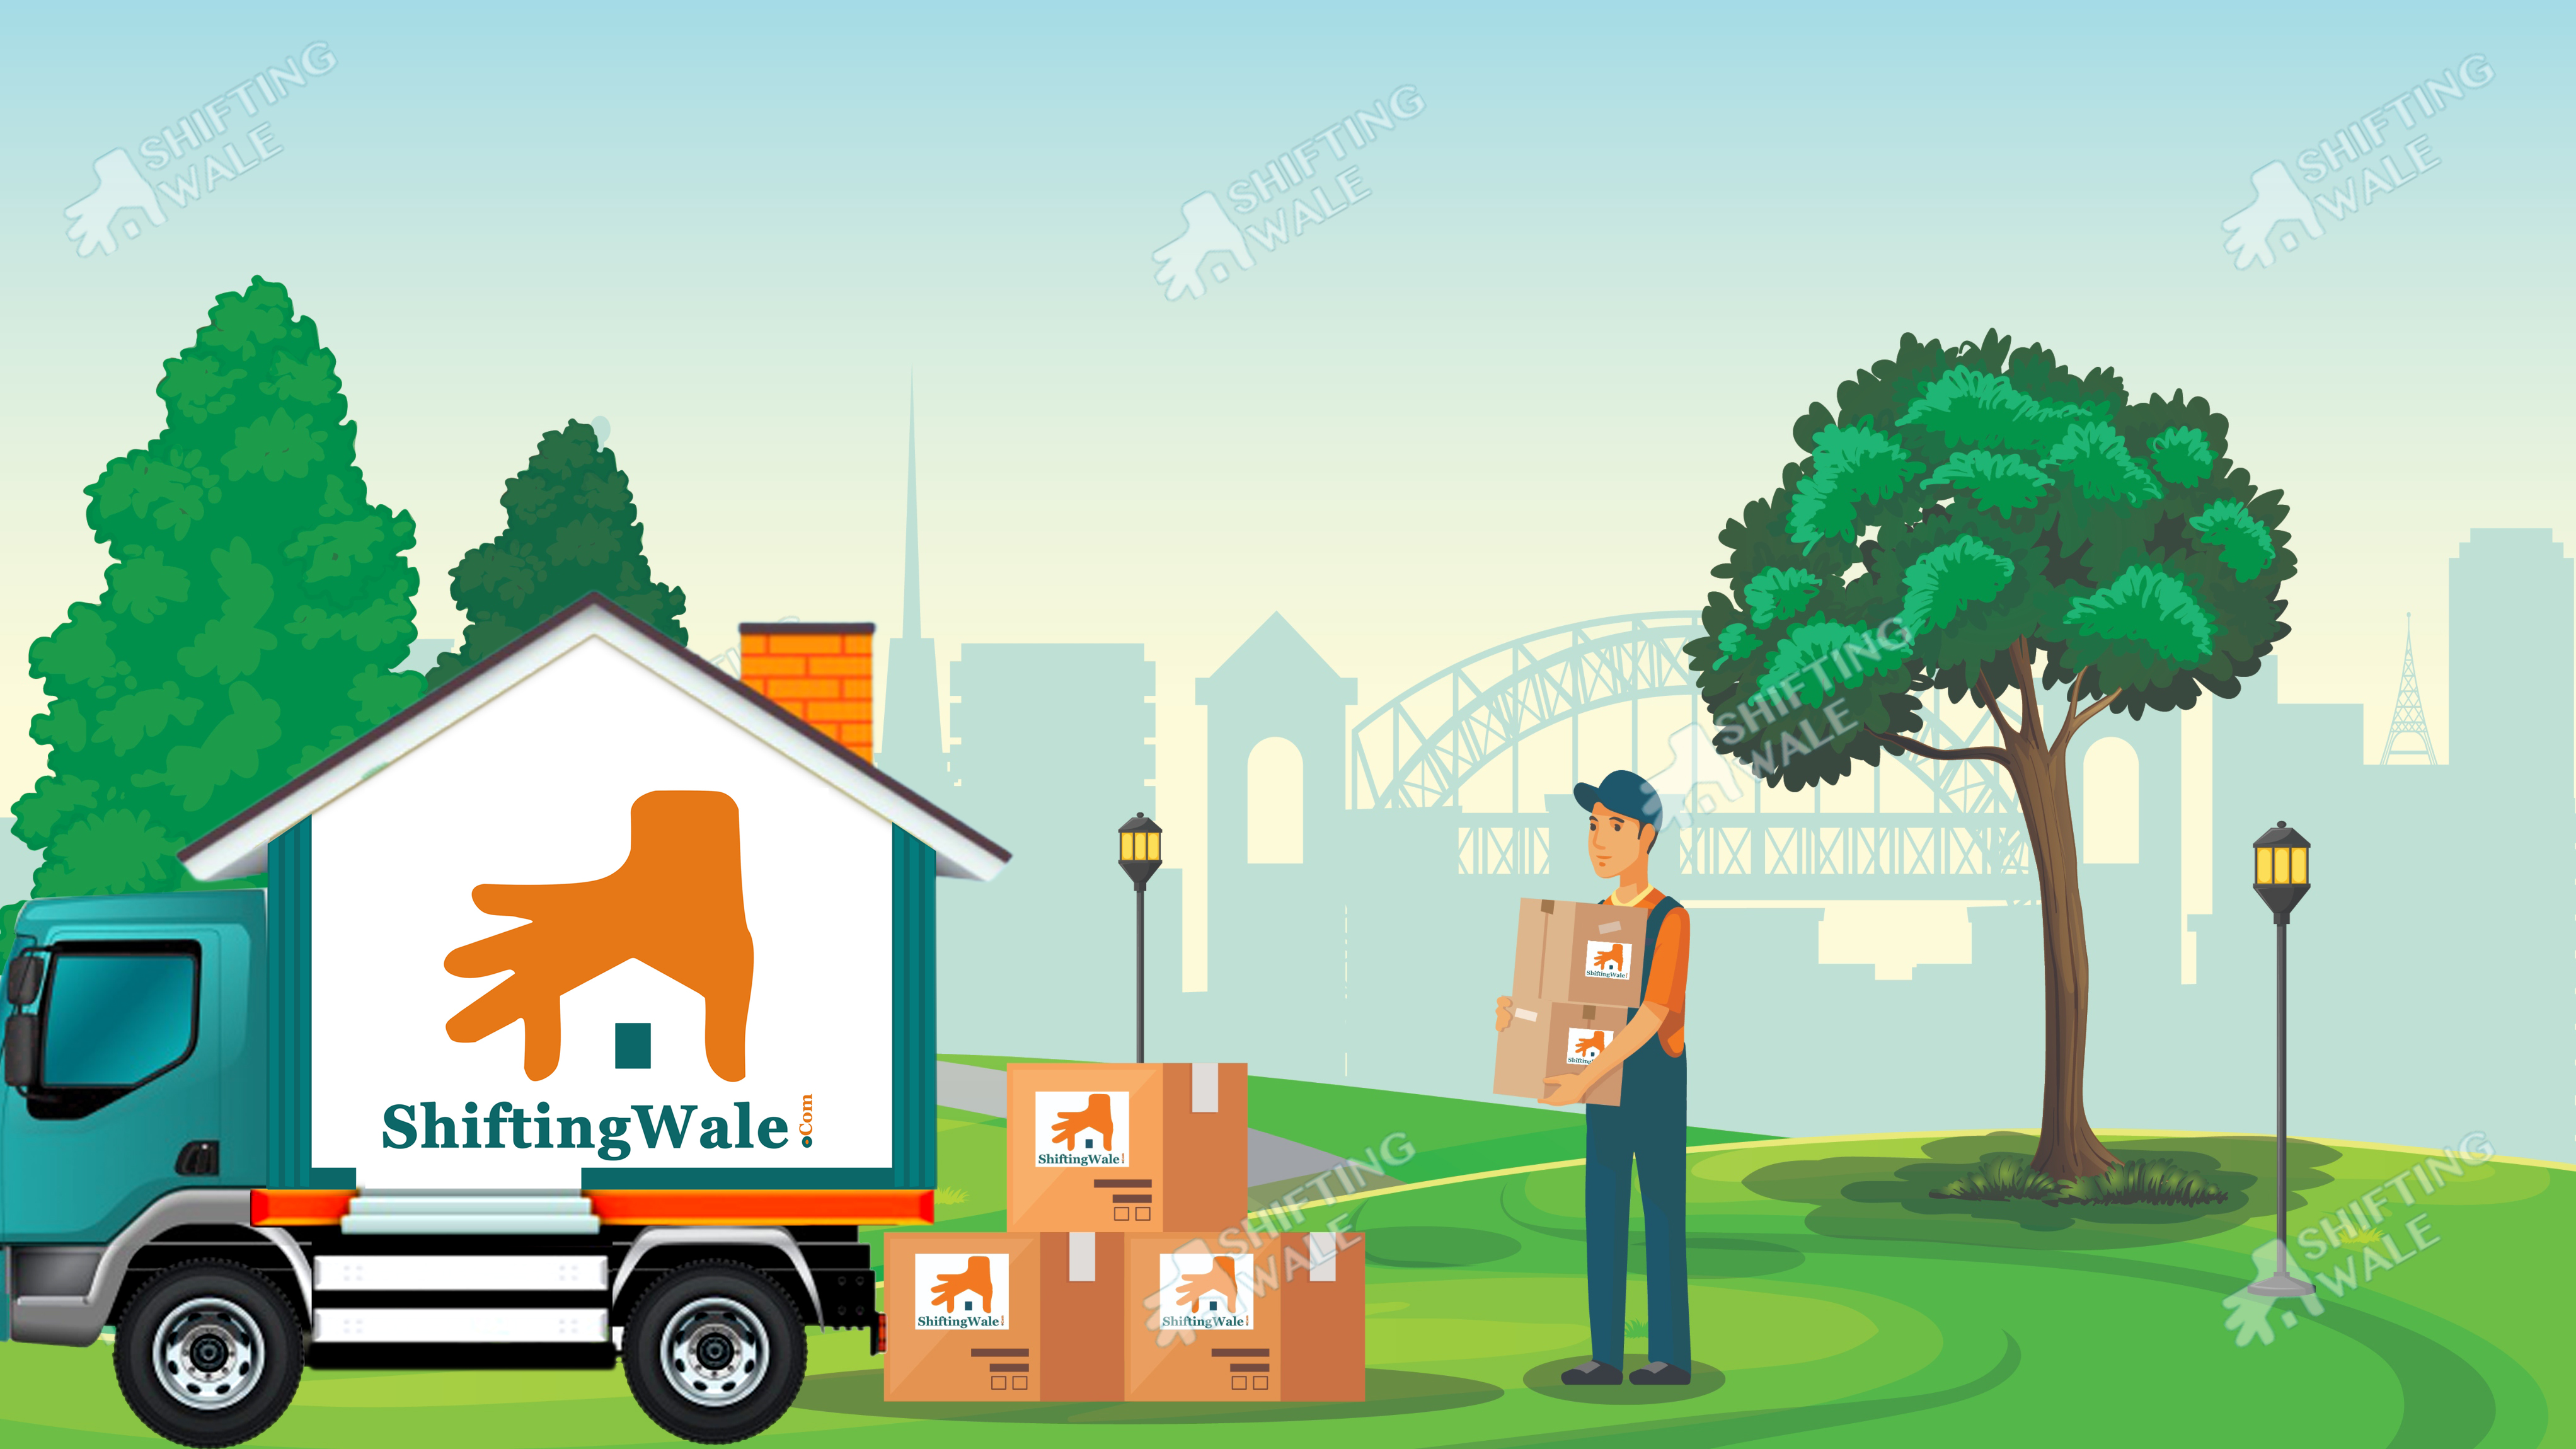 Need Packers and Movers for Household Goods Car from Delhi Ghaziabad Noida Gurugram to Pune Mumbai Goa Panvel